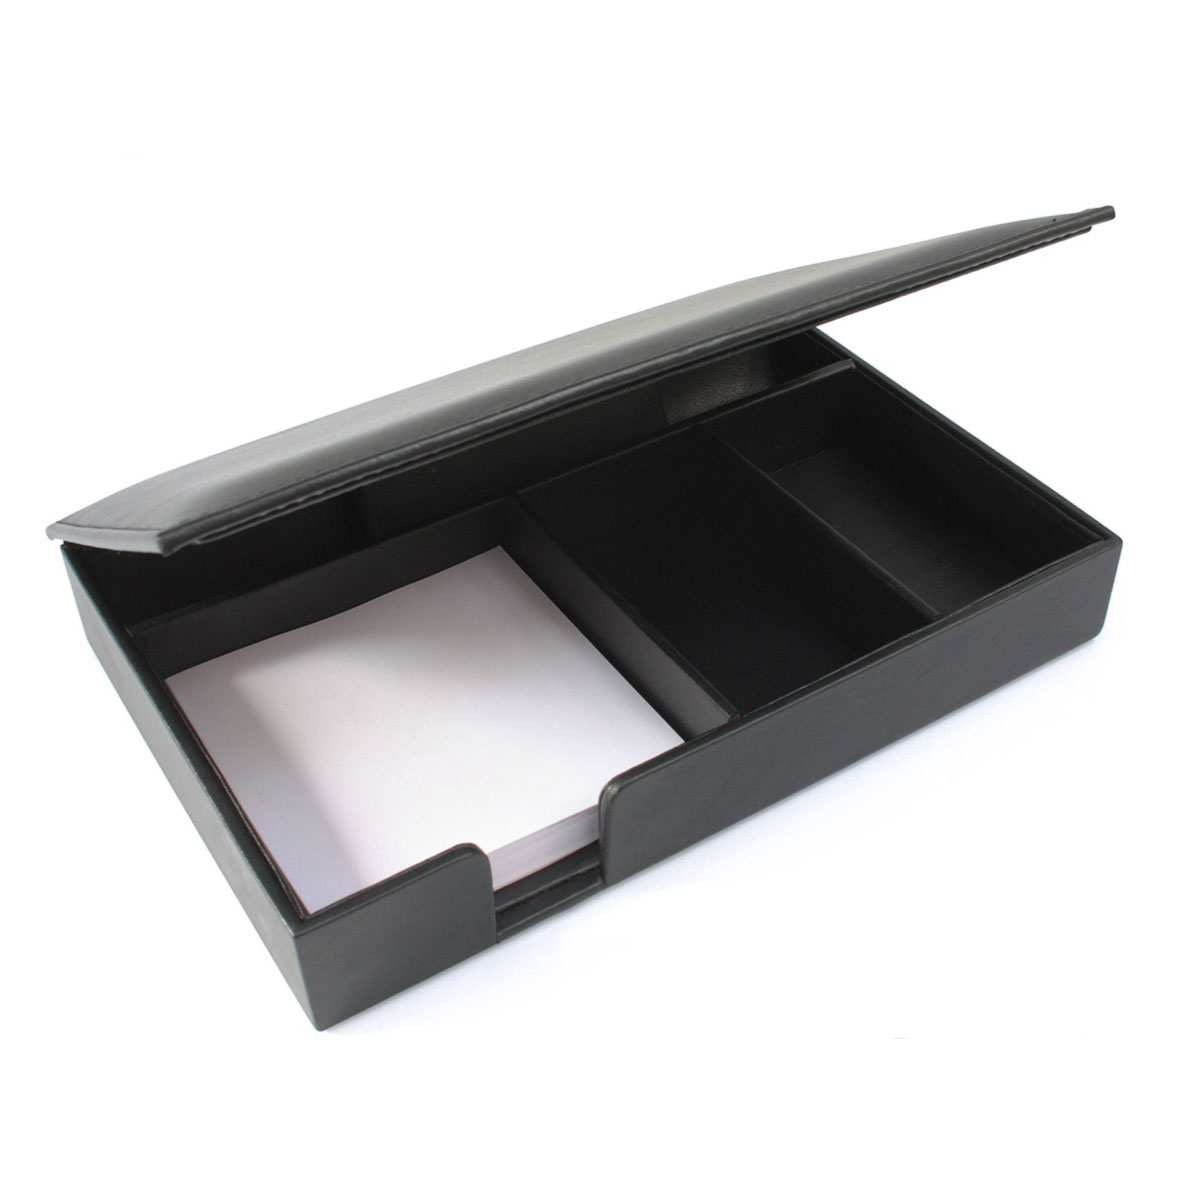 Executive Desk Items